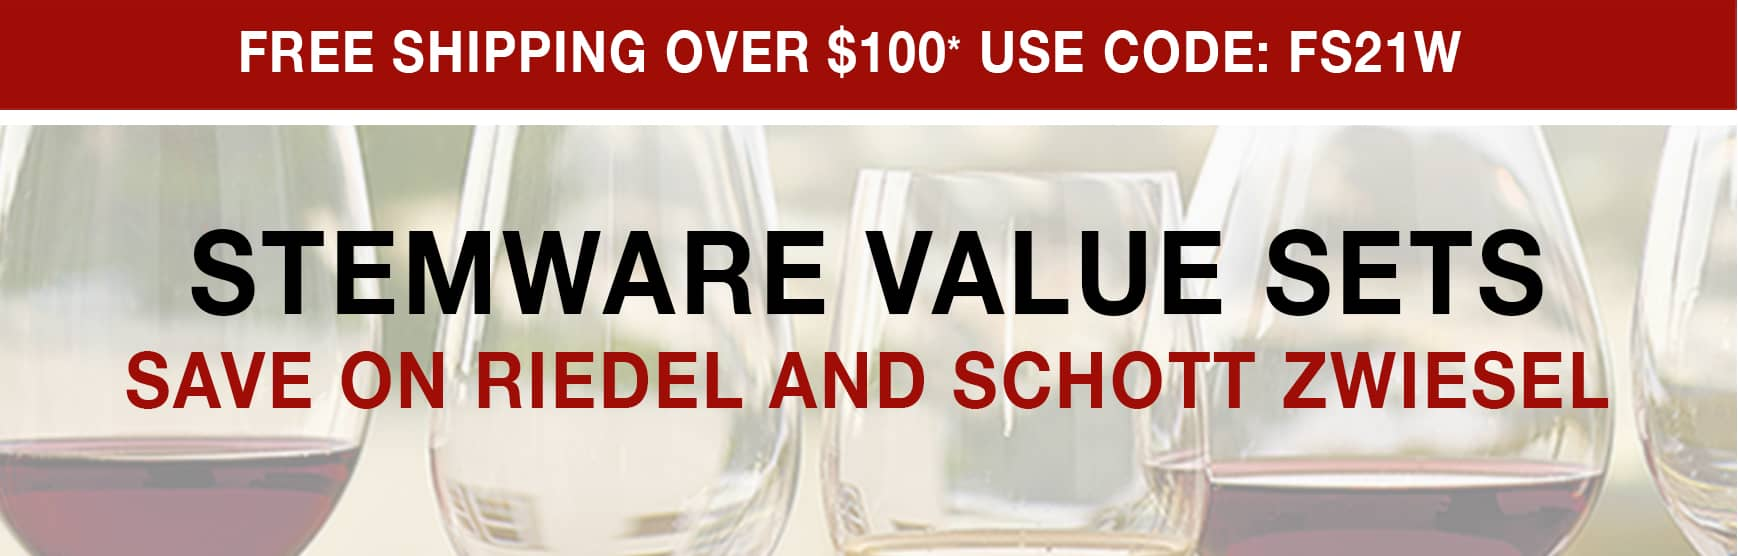 Stemware Value Sets - Save on Riedel Schott Zwiesel - Free Shipping Over $100* Use Code FS21W